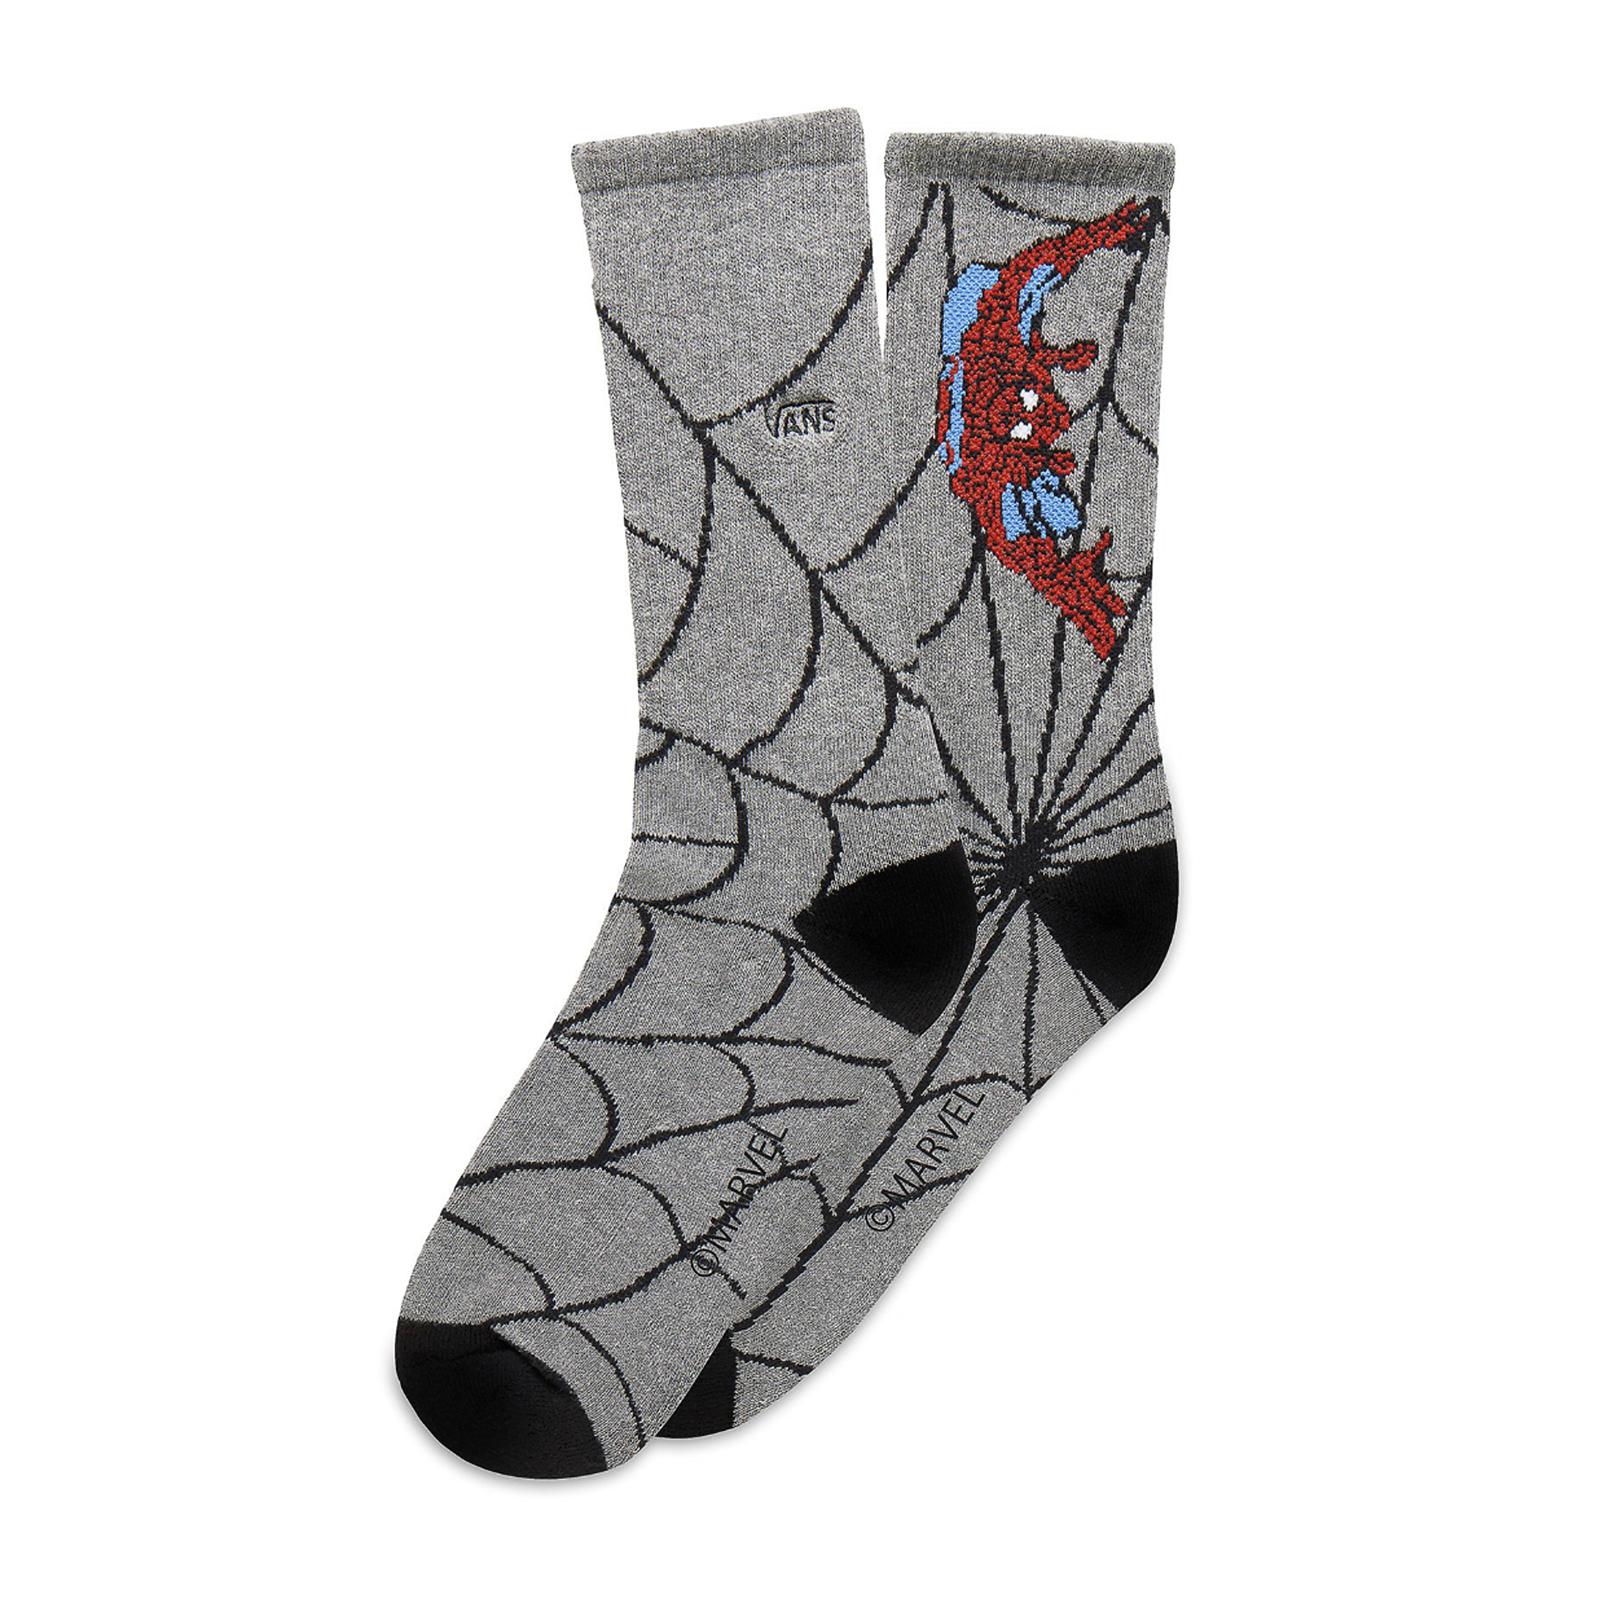 Details zu Vans Socken Mn Vans X Marvel Sock Spider Man Heather Grau Grau